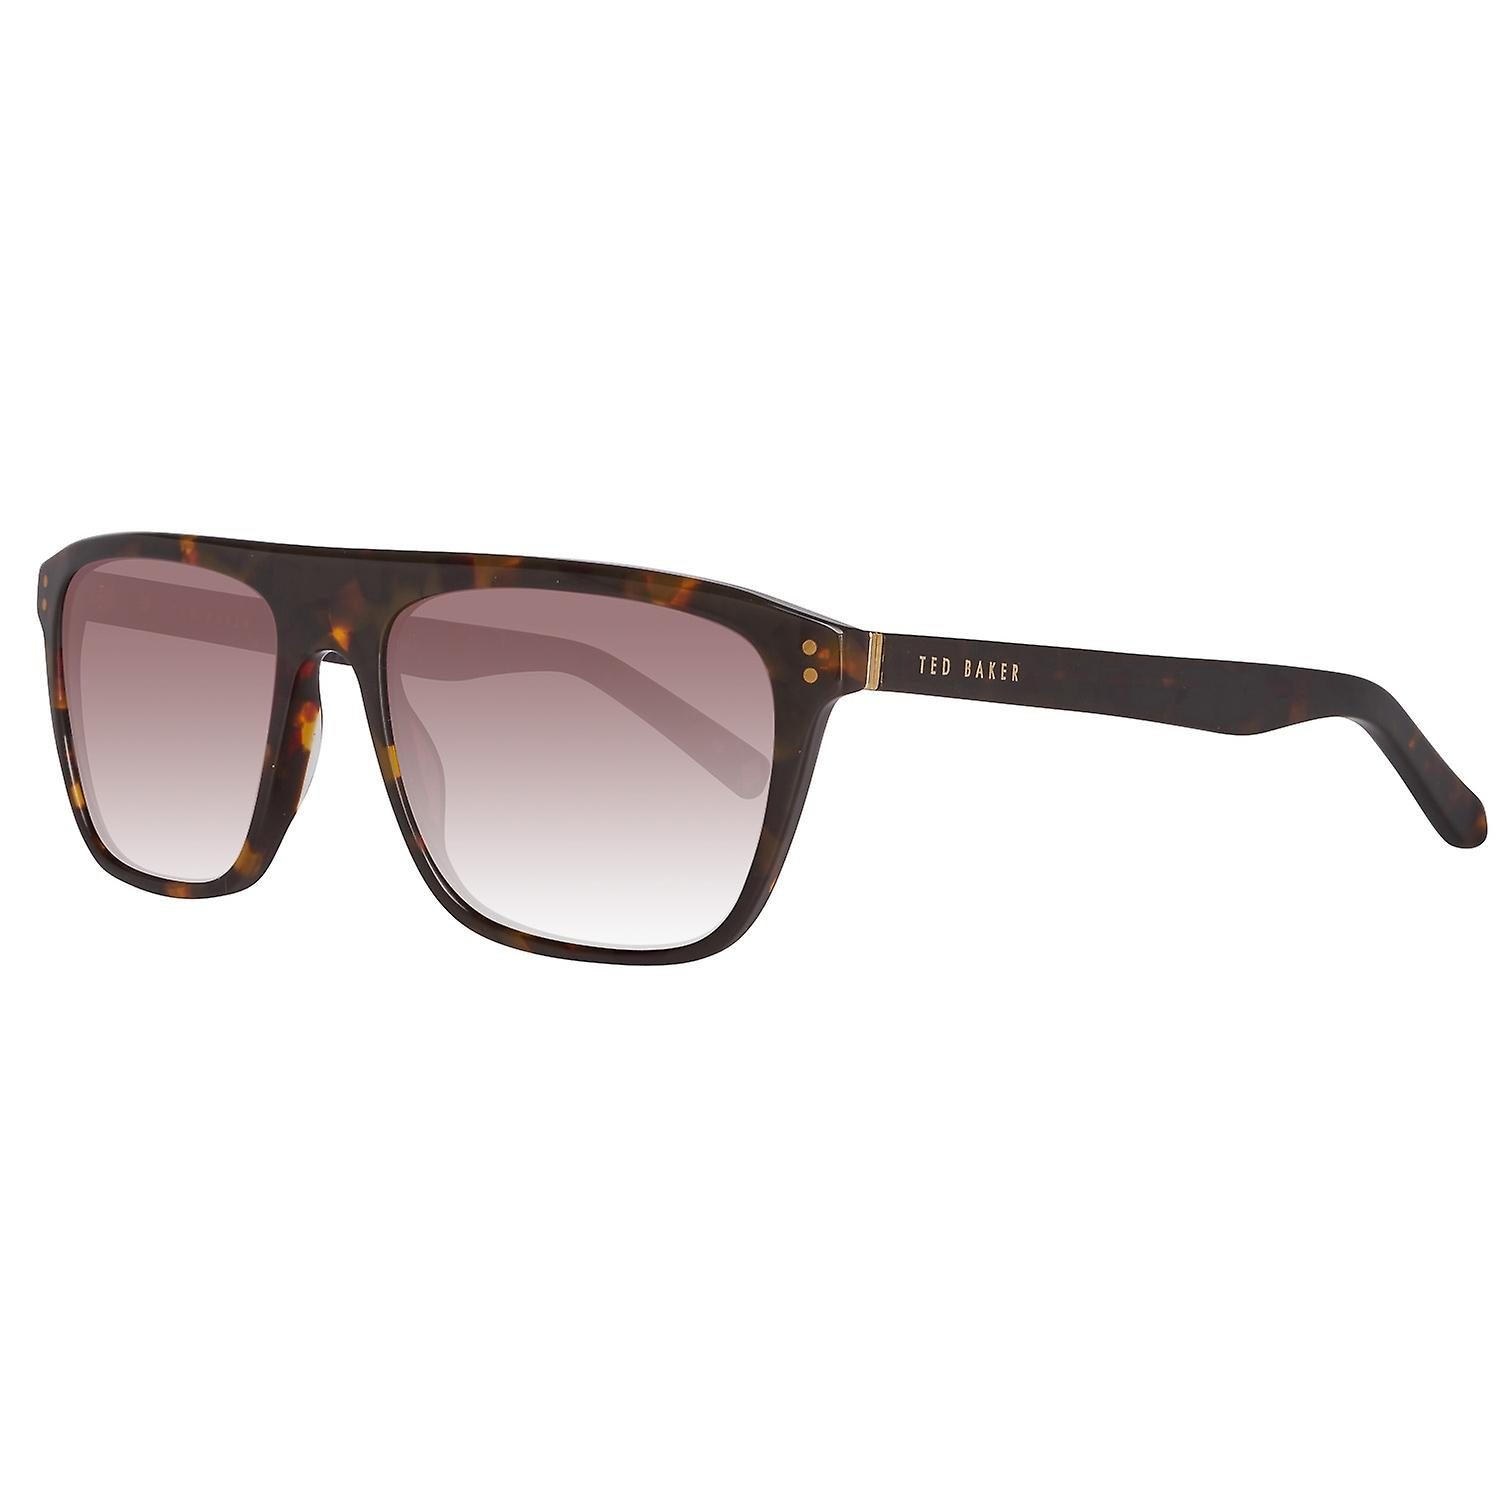 a5a79302d8 Ted Baker sunglasses mens Brown